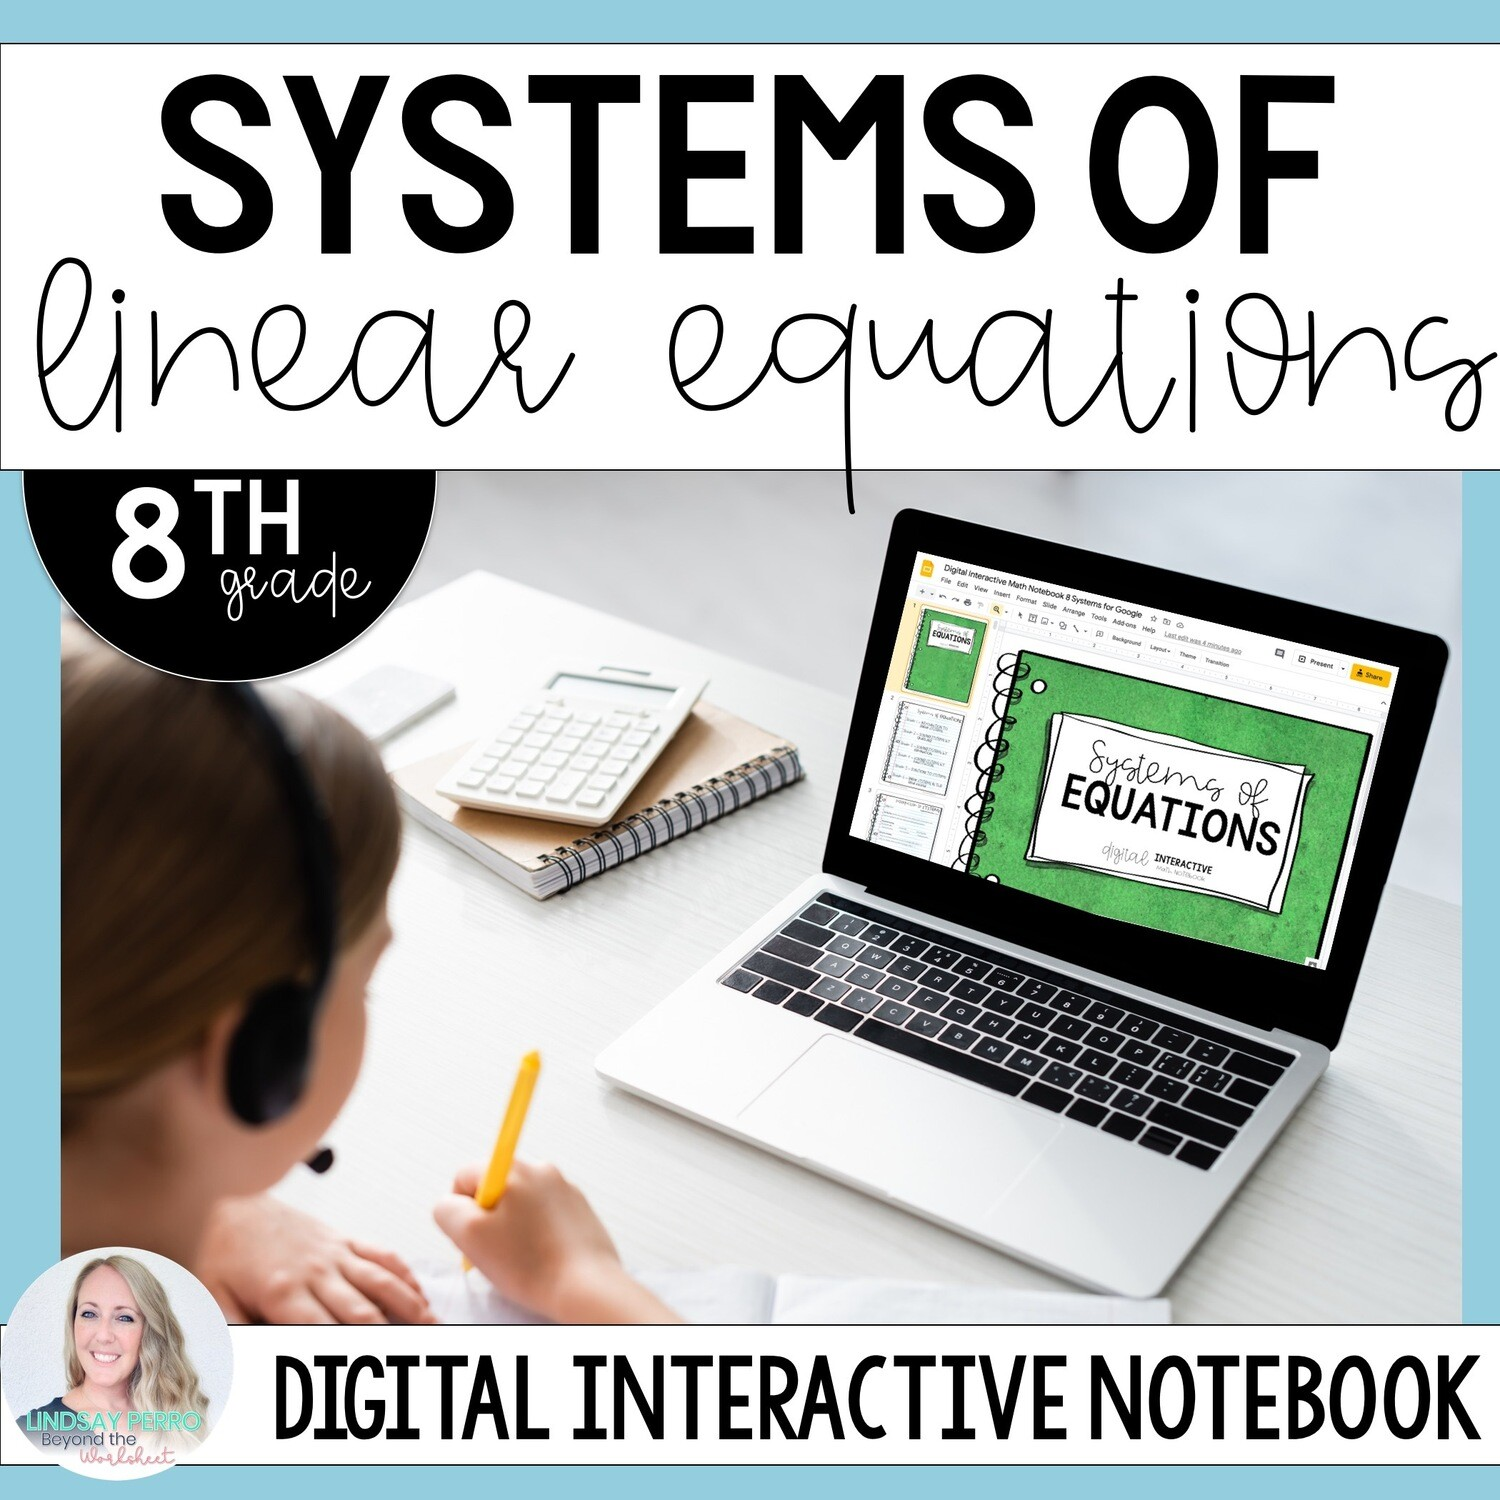 Systems of Equations Digital Interactive Notebook for 8th Grade